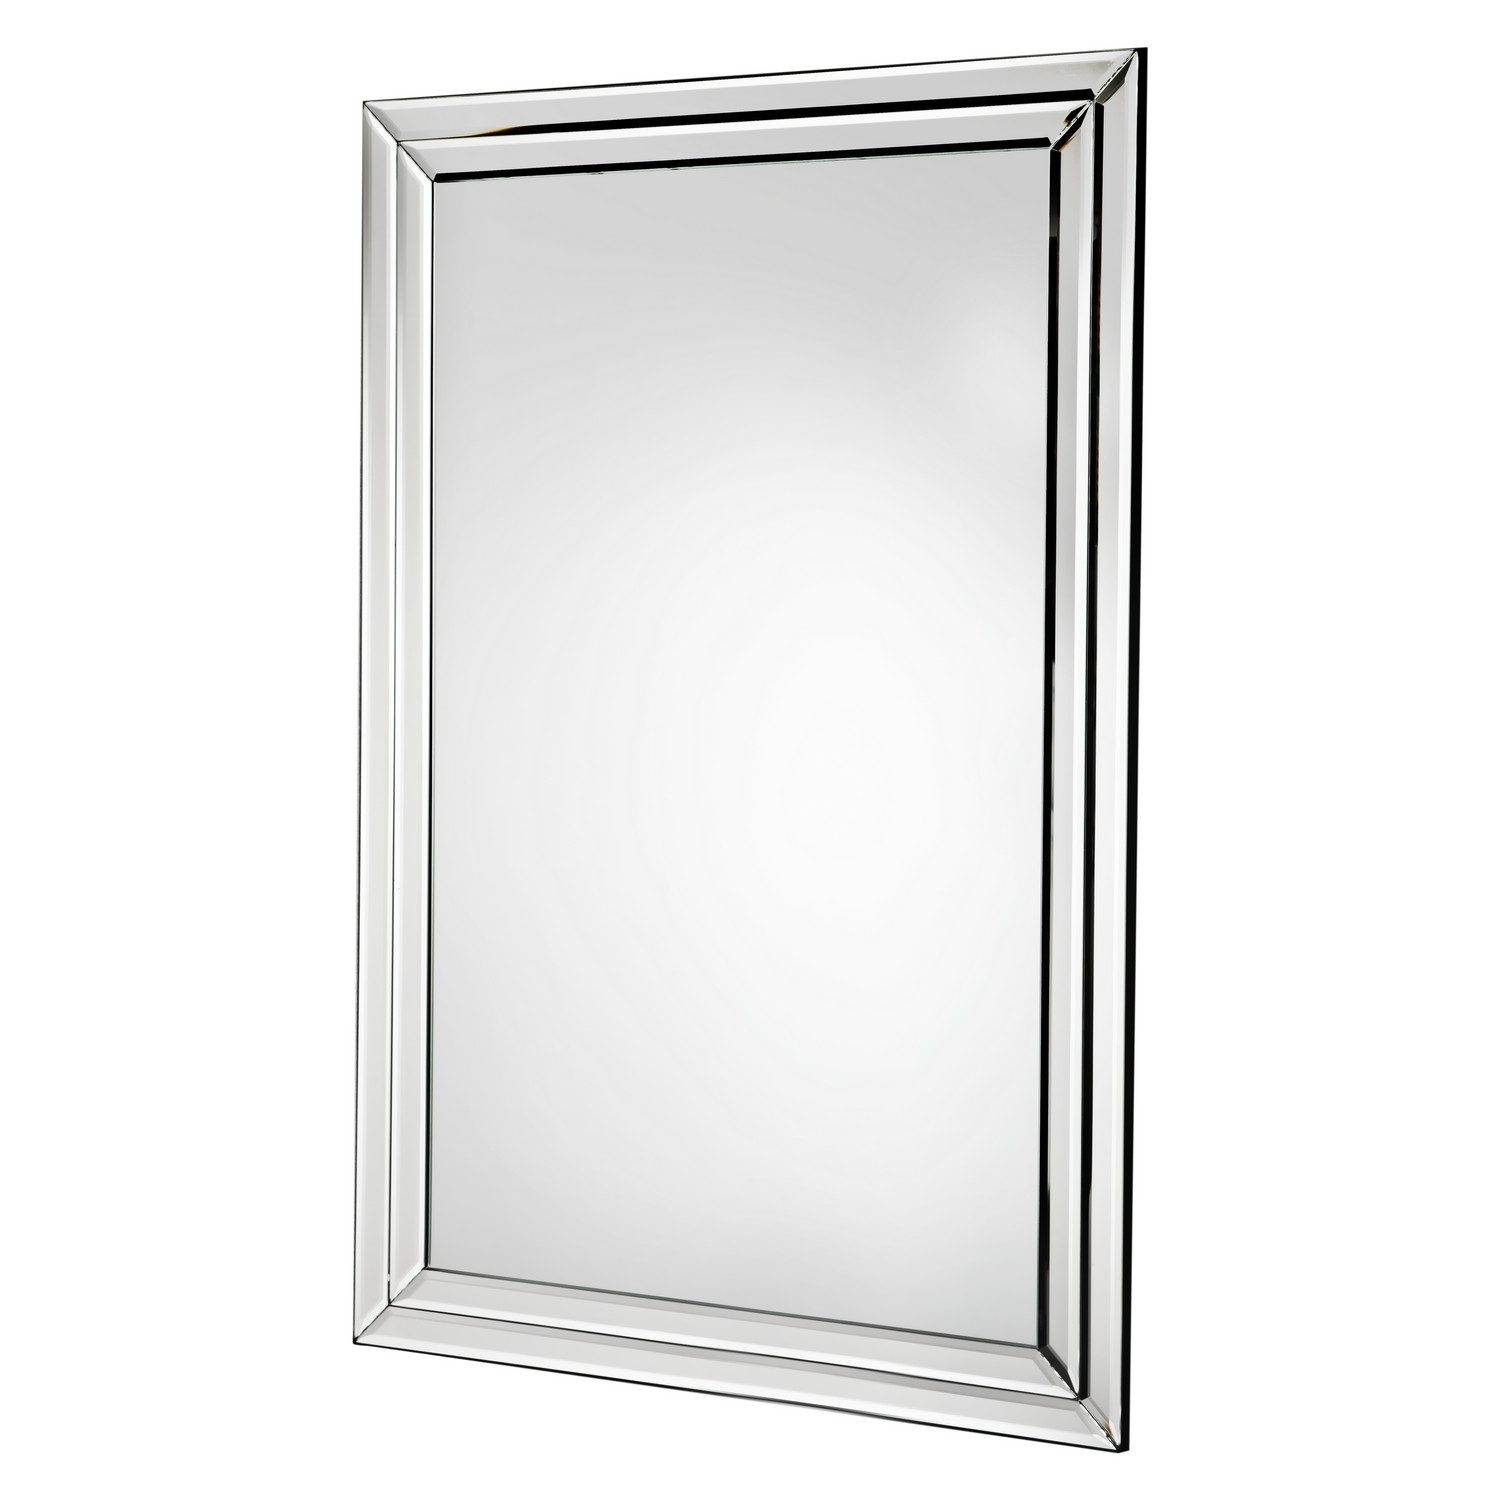 Buy Living Bevelled Glass Edge Wall Mirror Silver At Argoscouk Throughout Bevelled Glass Mirror (Image 7 of 15)